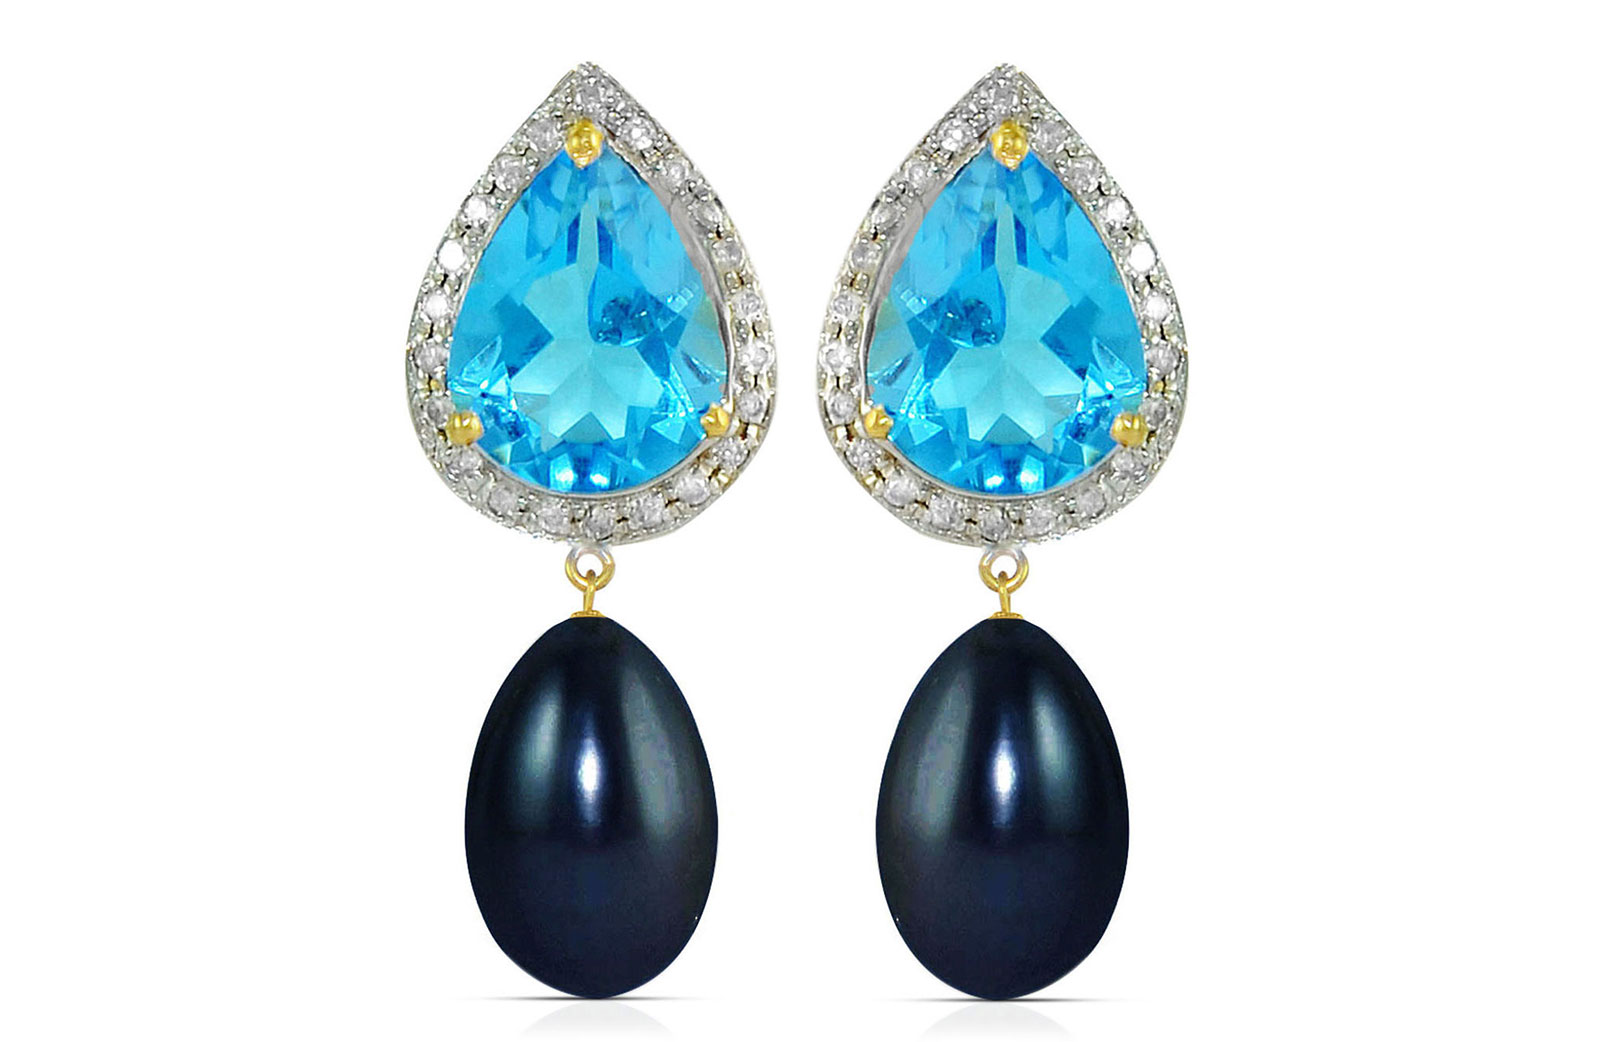 Vera Perla 18K Gold 0.24ct Diamonds, Topaz and 13mm Black Pearl Earrings